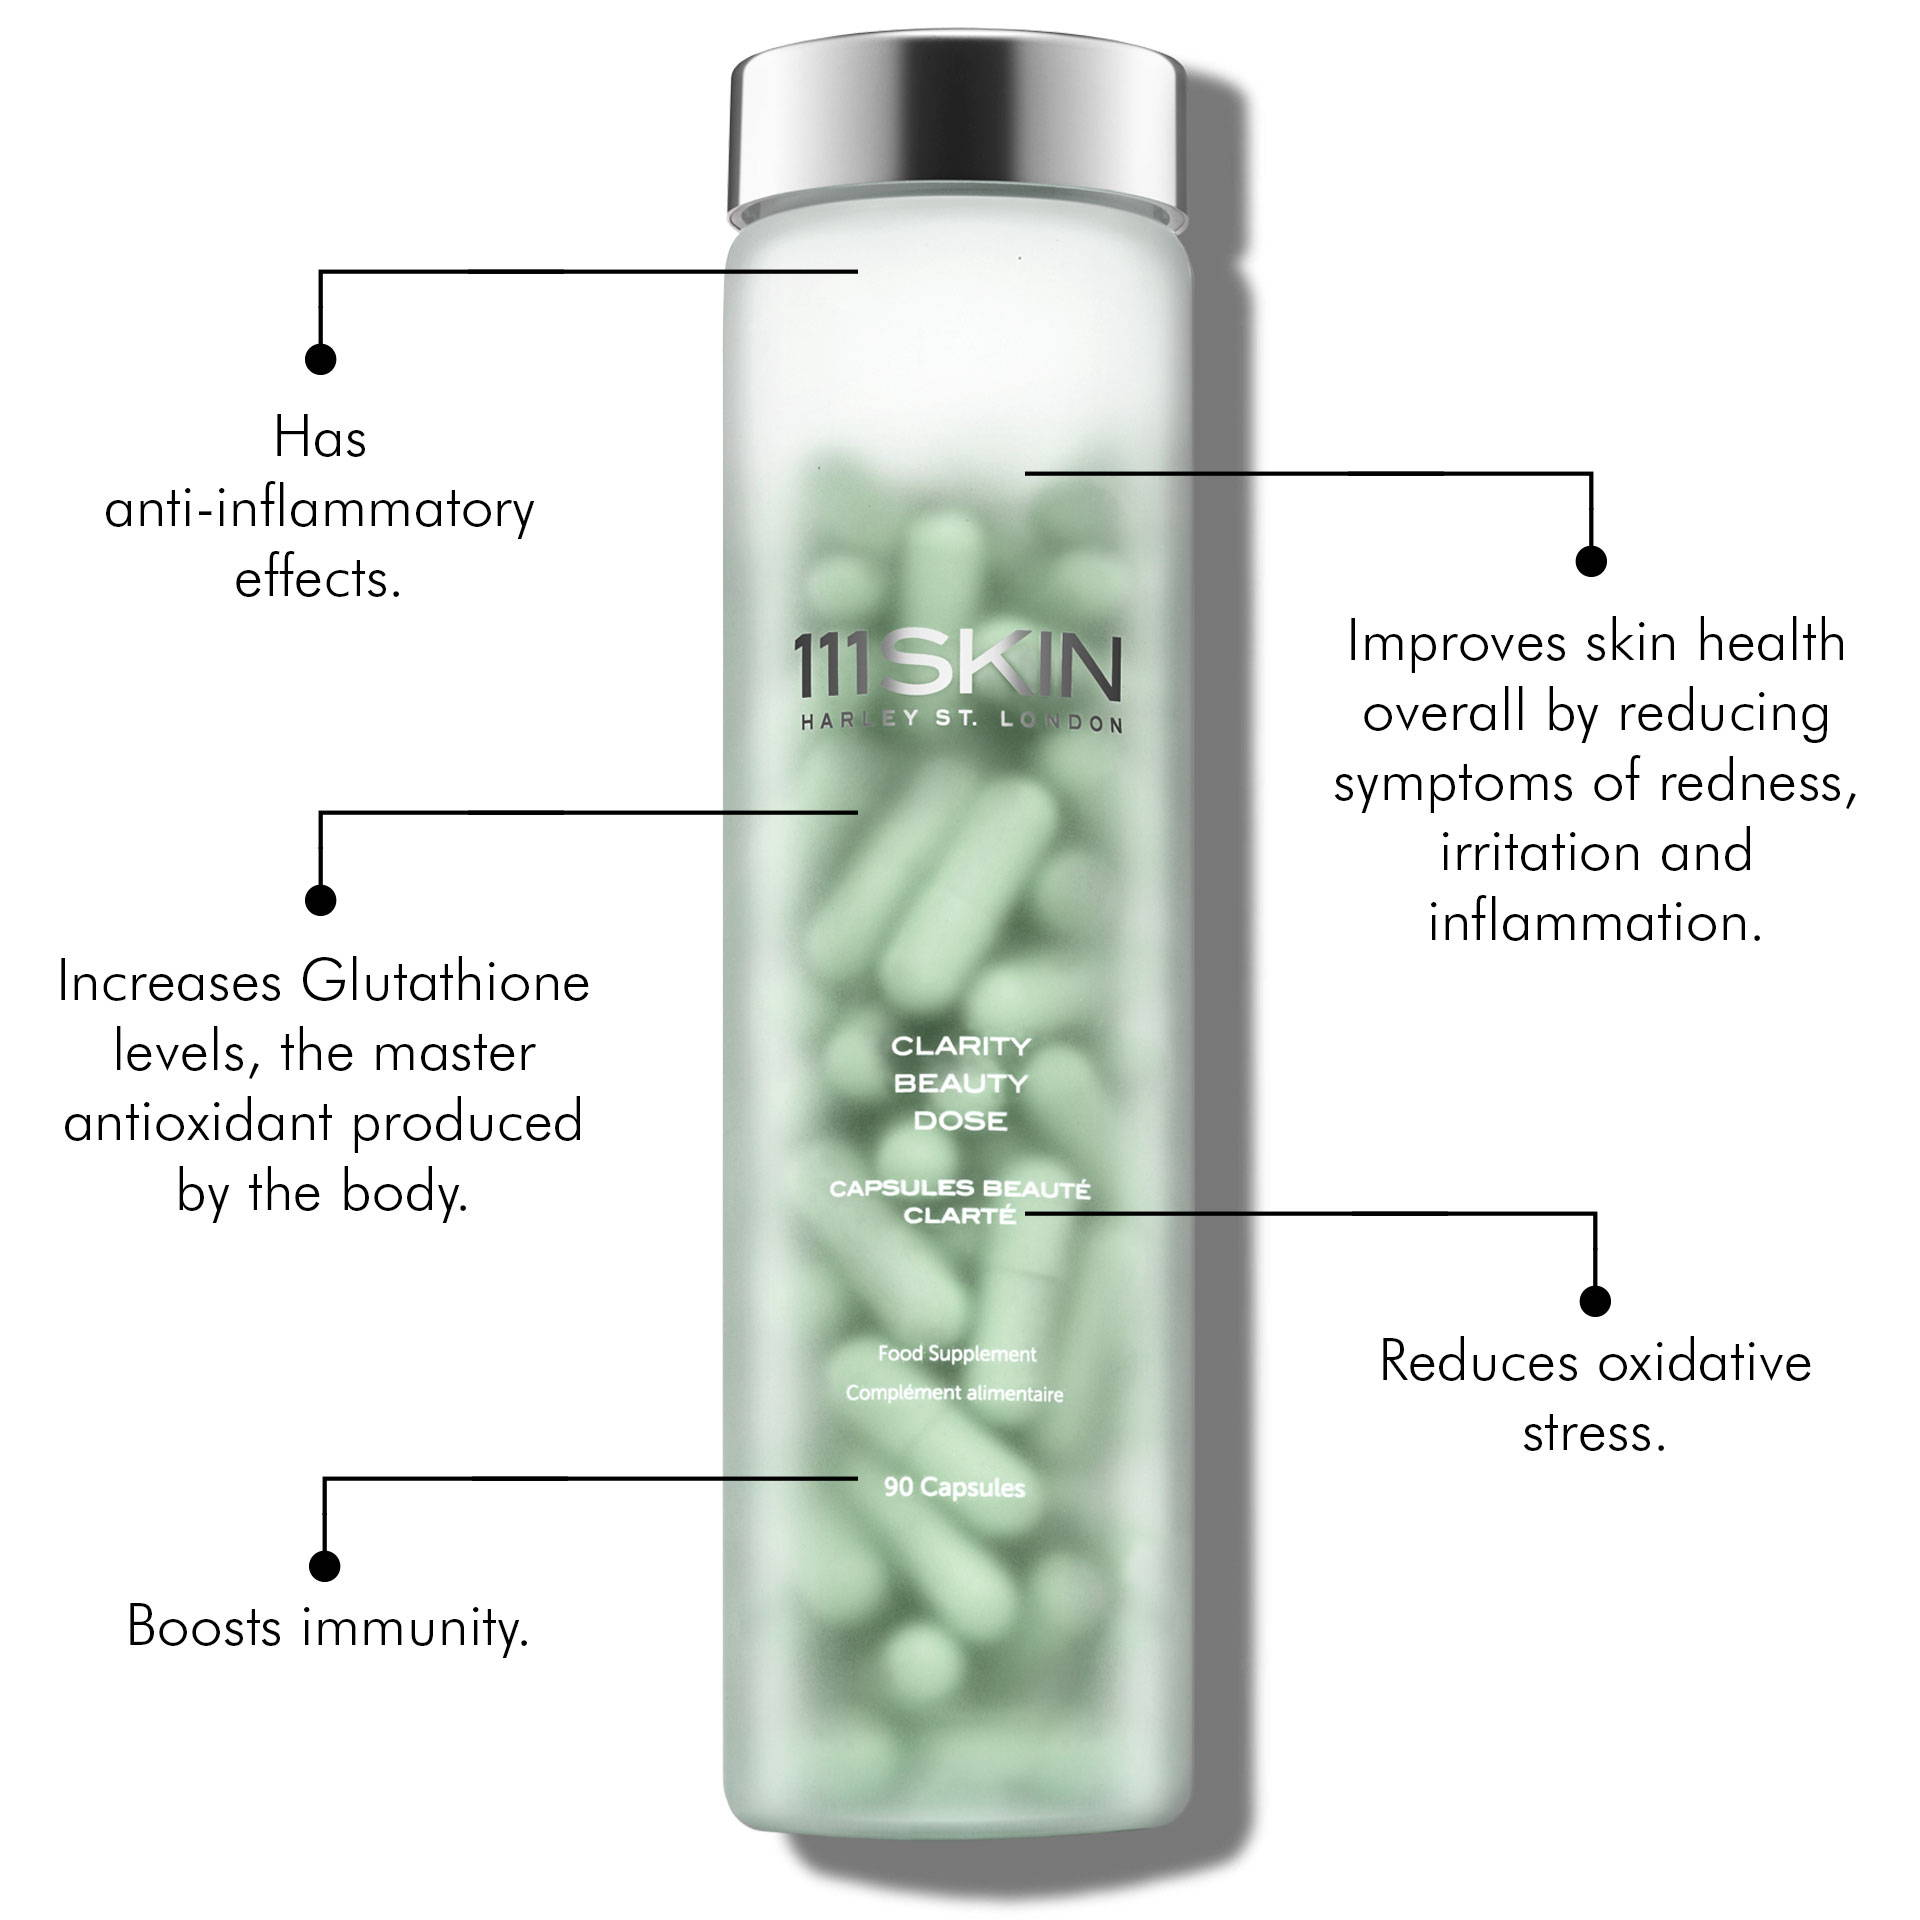 Has anti-inflammatory effects. Improves skin health overall by reducing symptoms of redness, irritation and inflammation. Reduces oxidantive stress. Increases Glutathione levels, the master antioxidant produced by the body. Boosts immunity.